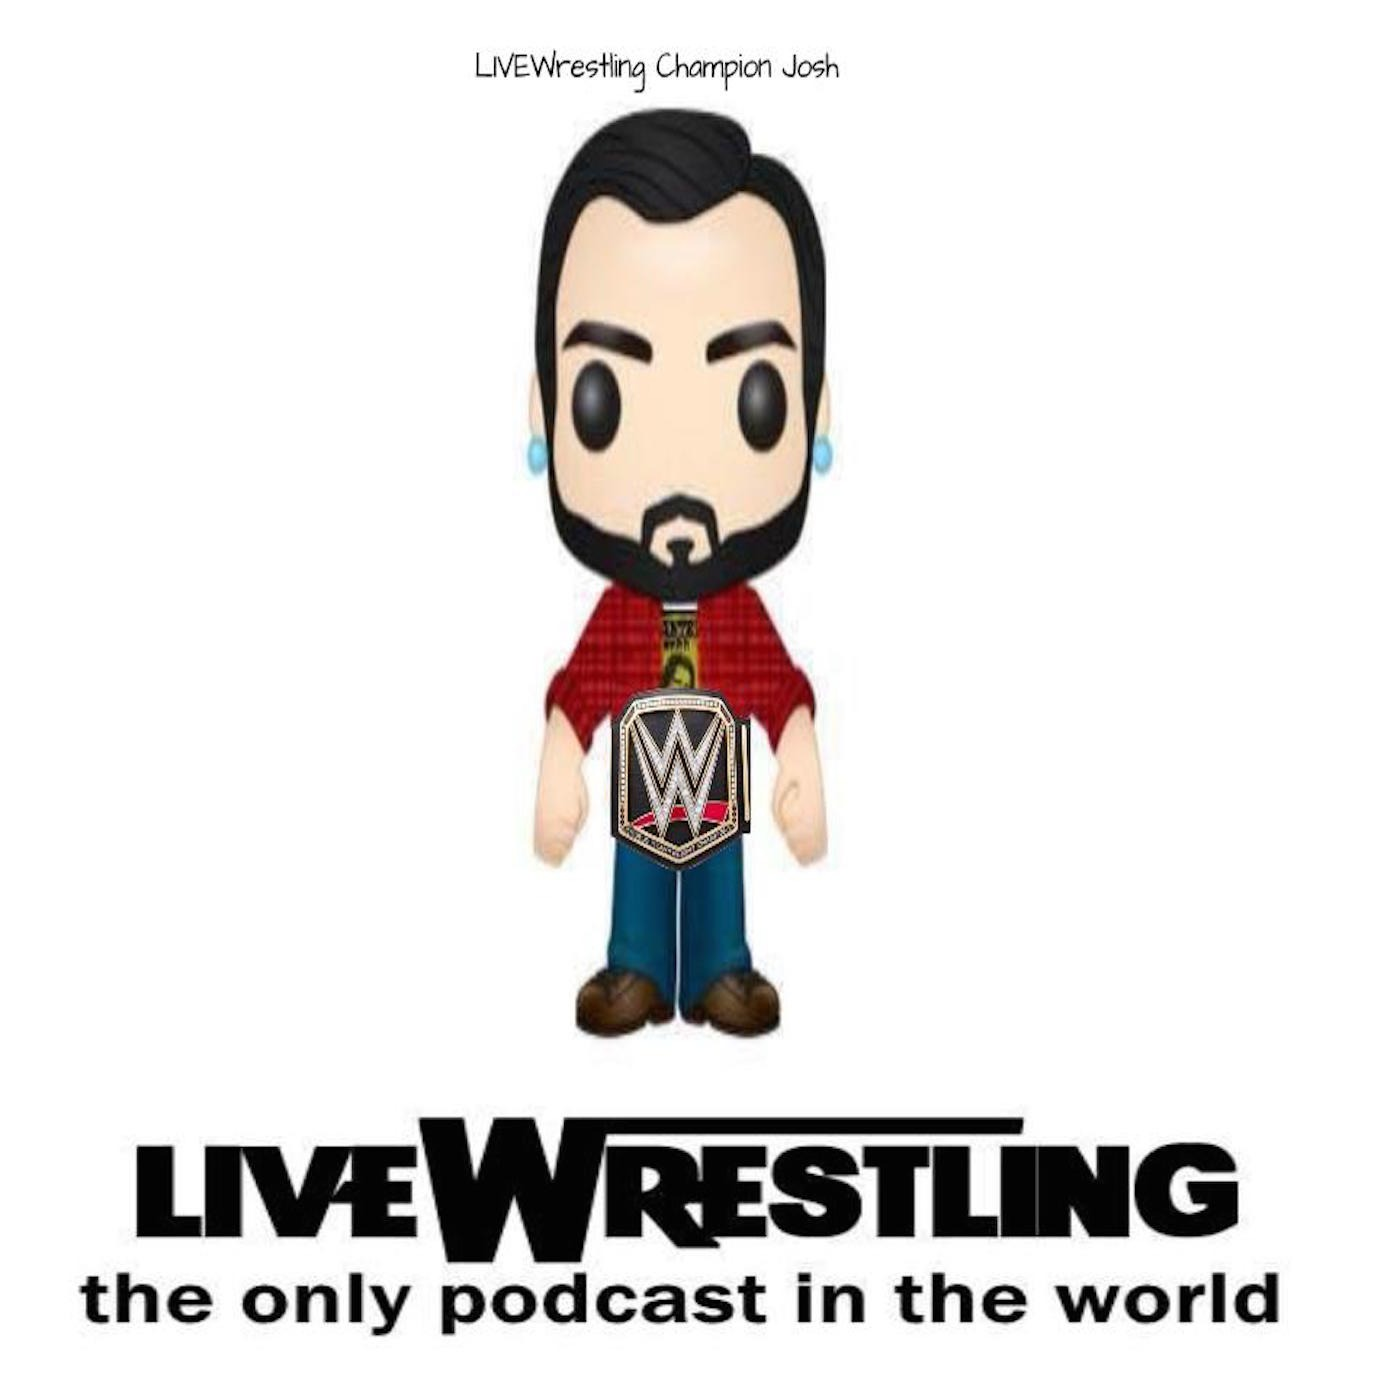 LIVEWrestling- A WWE and Other Wrestling Stuff Podcast